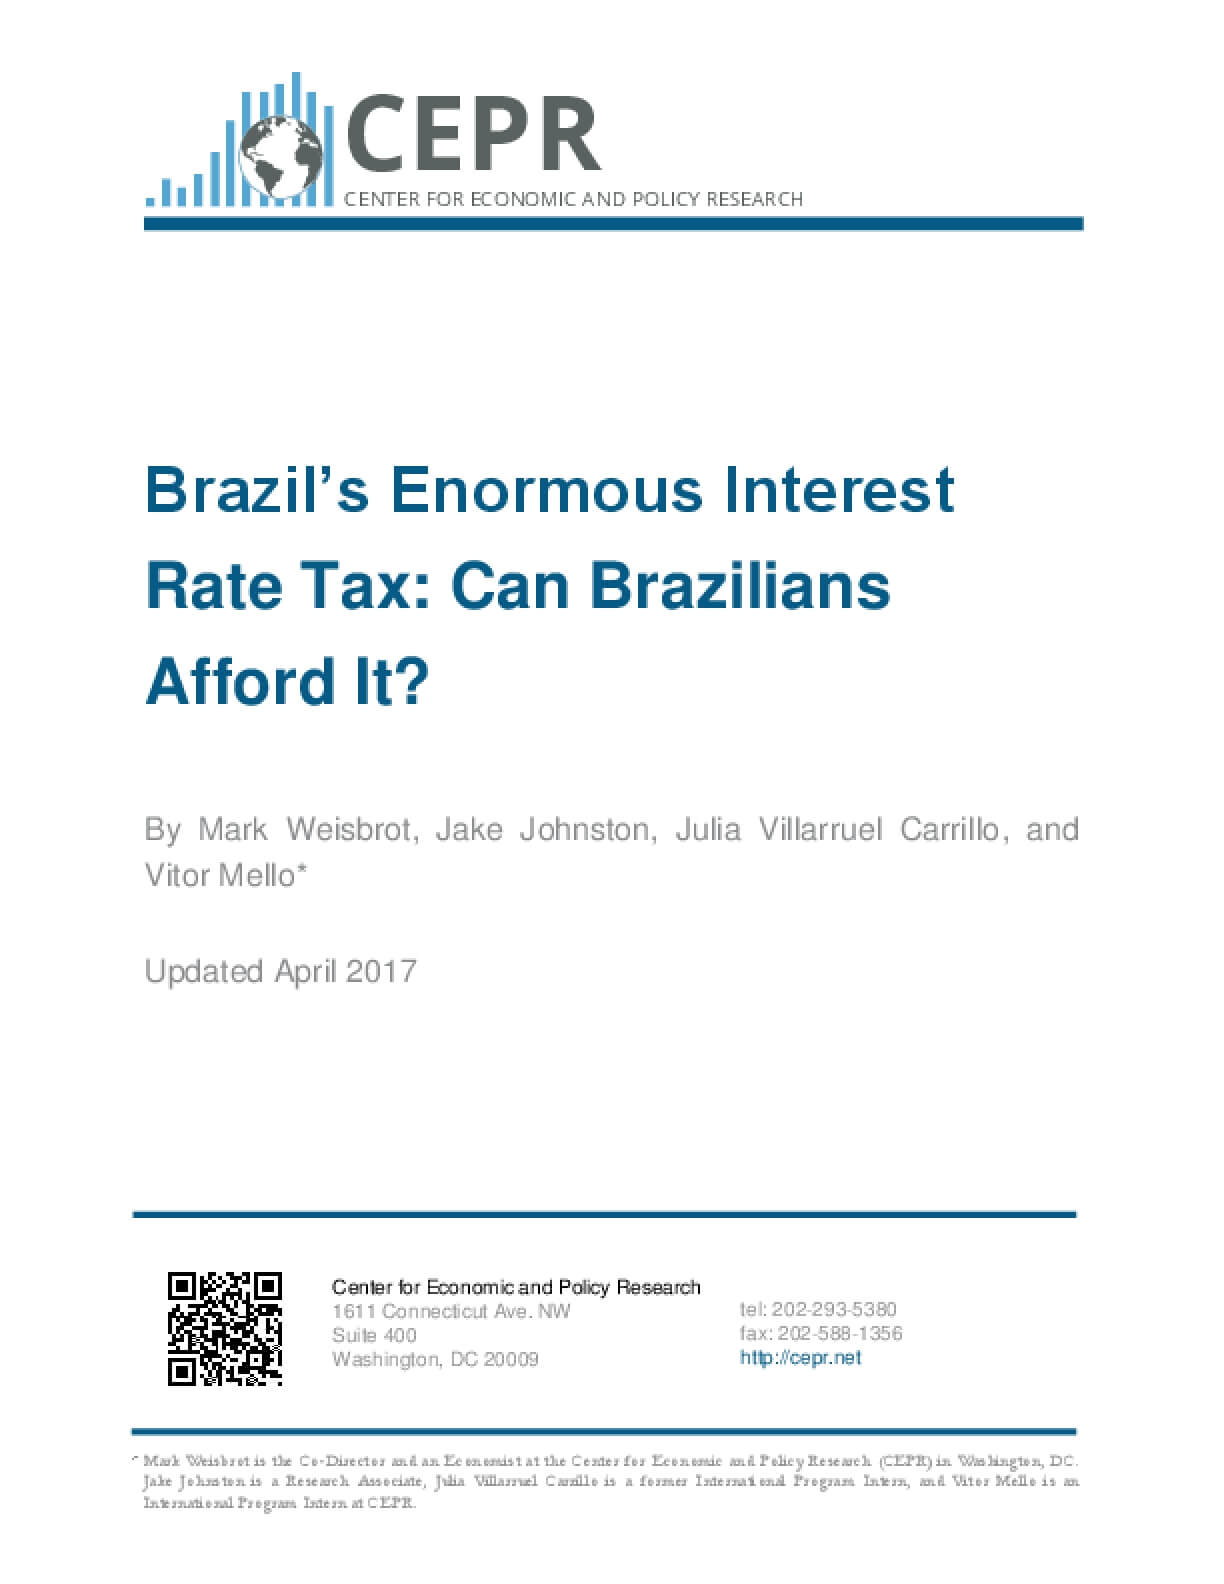 Brazil's Enormous Interest Rate Tax: Can Brazilians Afford It? Updated April 2017